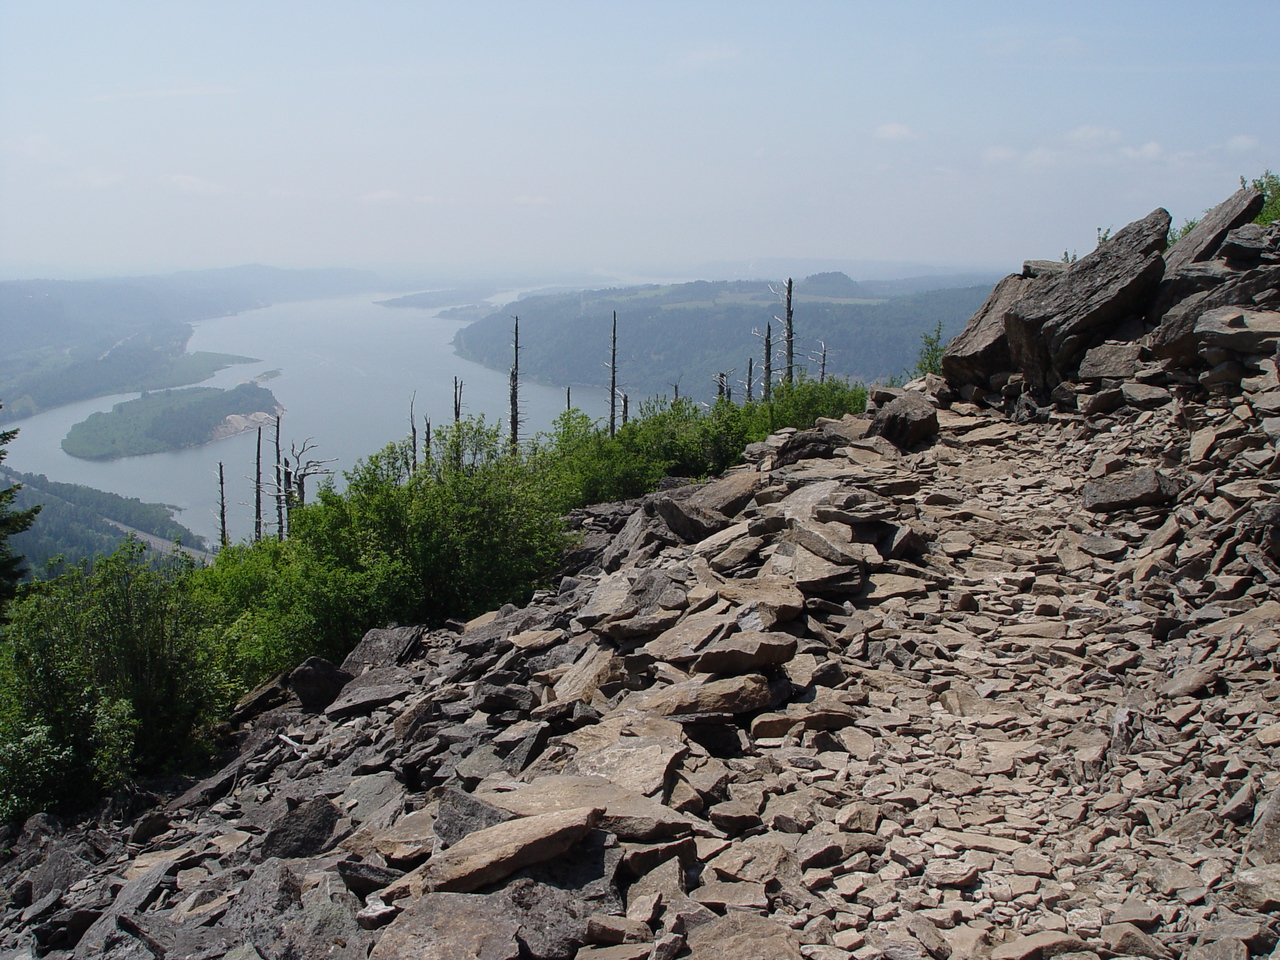 Since I was already on the trail I headed on up to Angels Rest